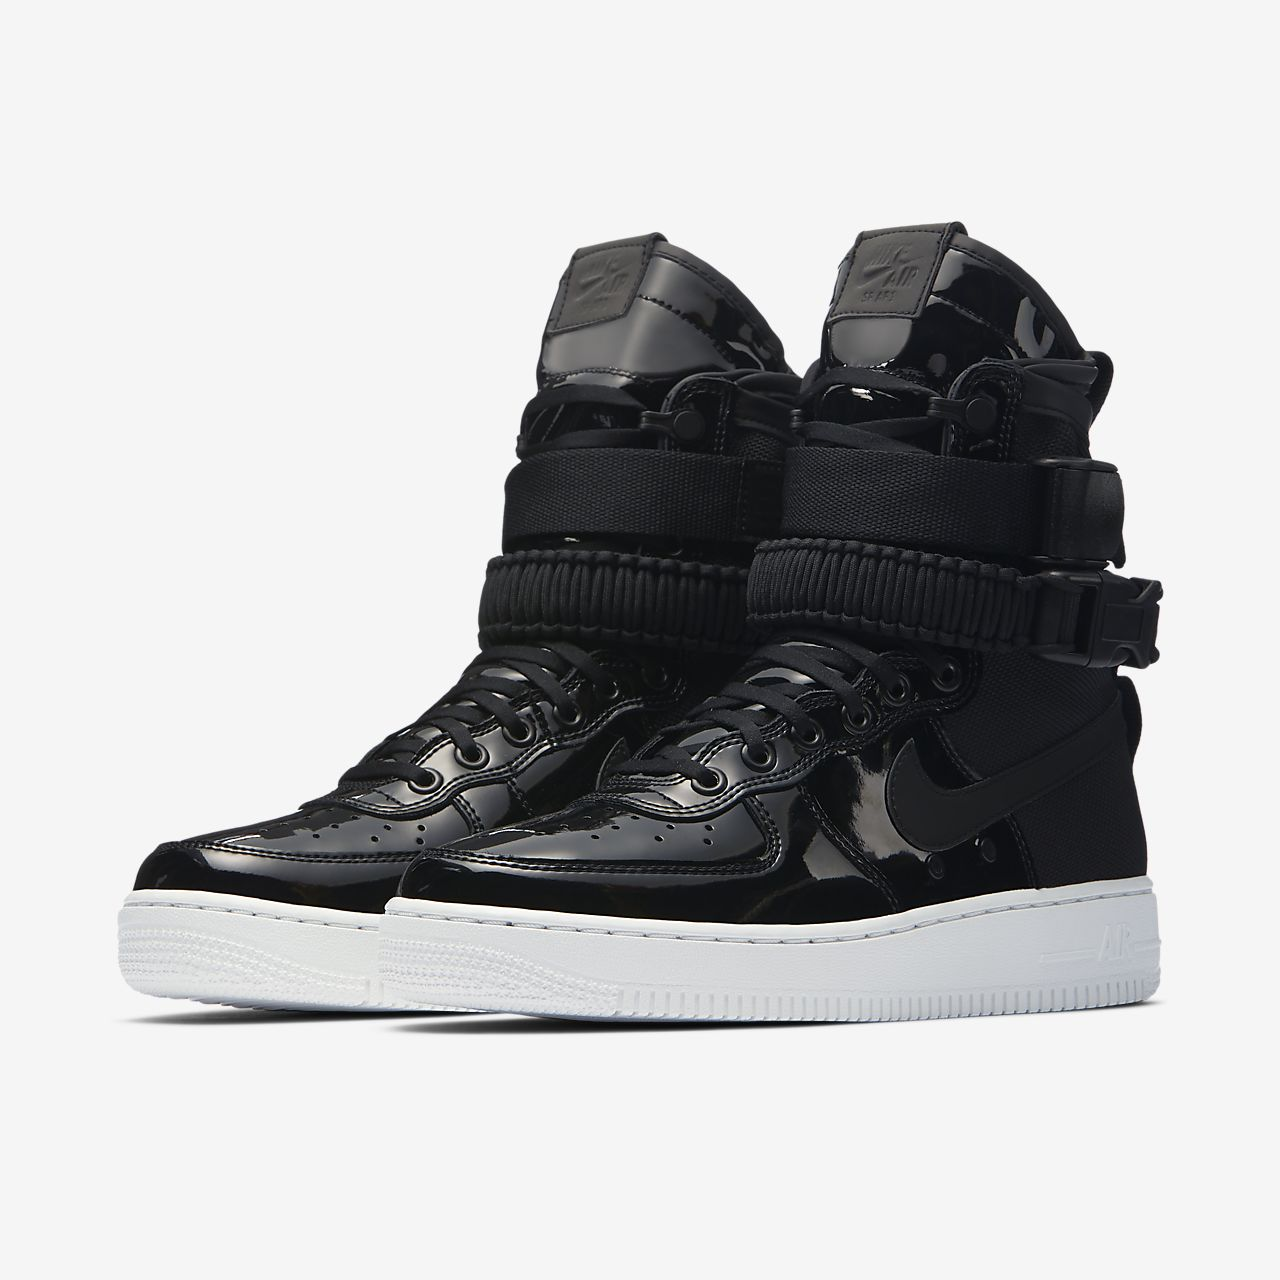 Nike SF Air Force 1 SE Premium Women's Lifestyle Shoes Black/Grey kW2771E